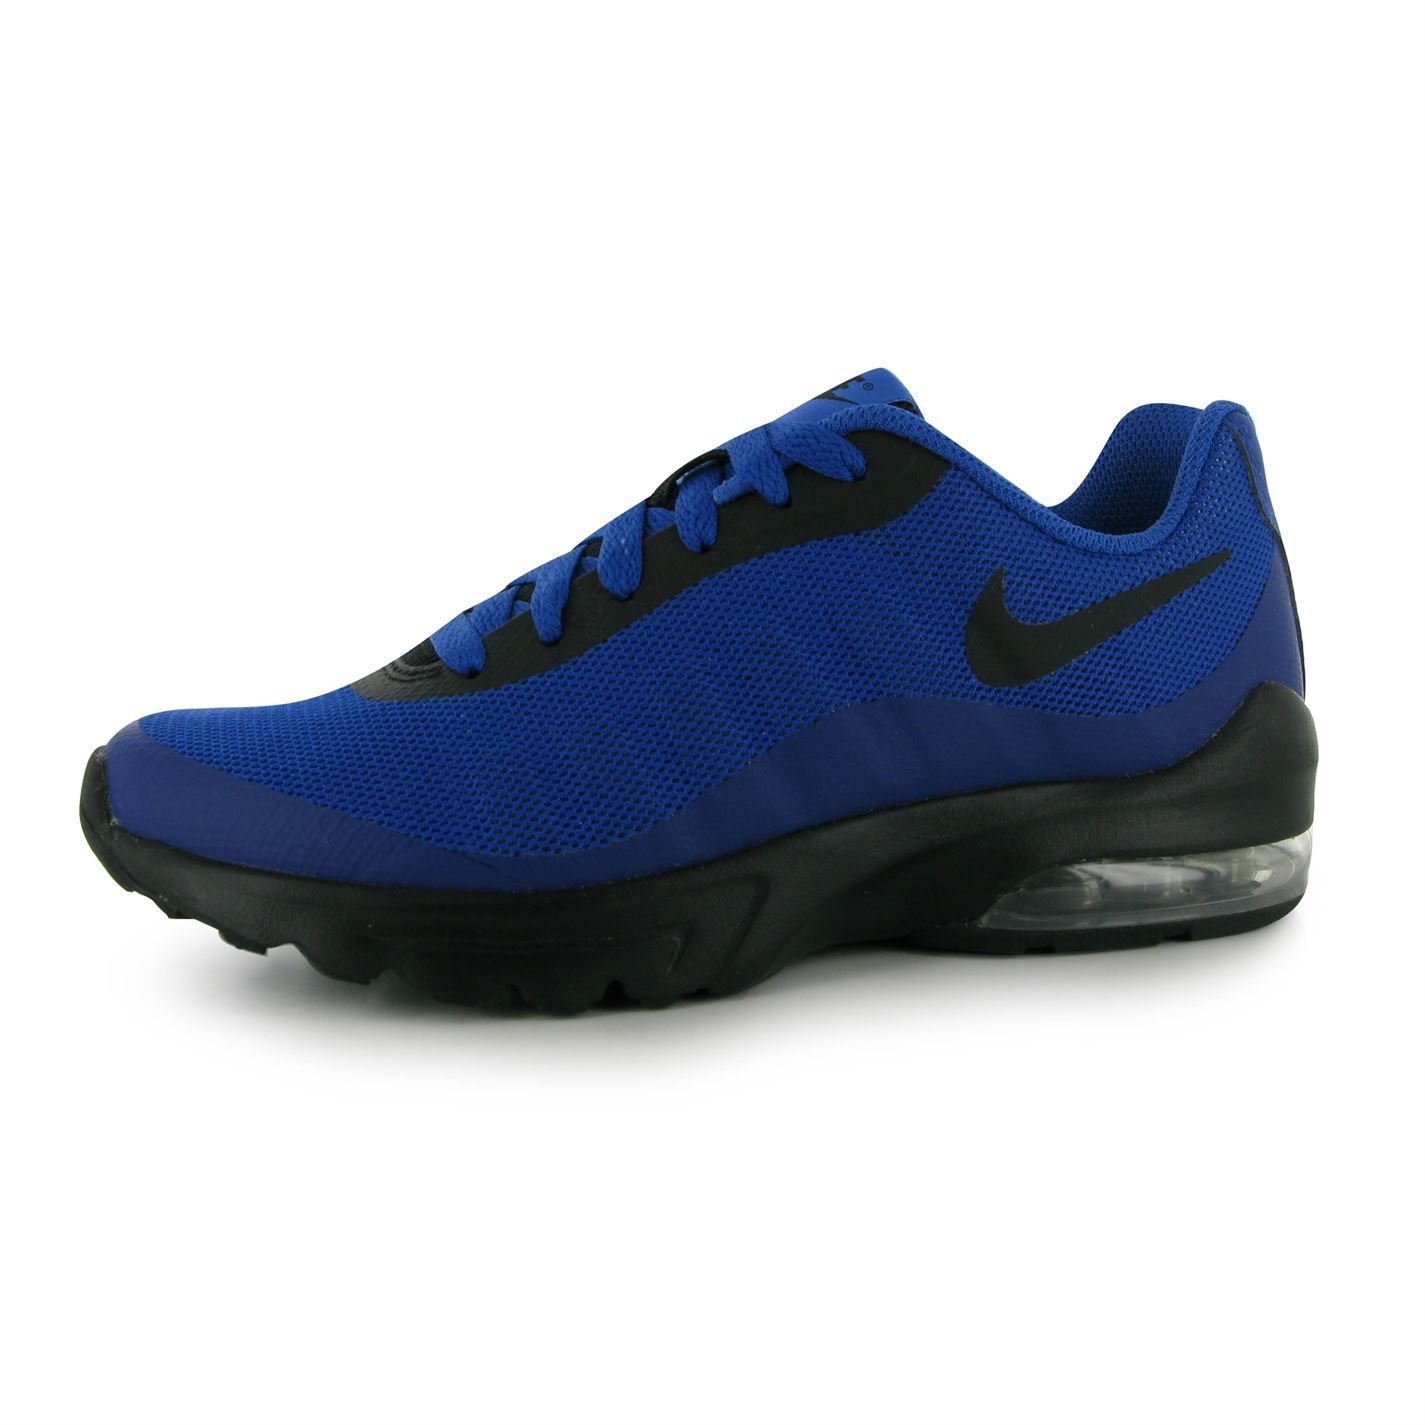 01b21beecd878 Nike Air Max Invigor Trainers Junior Boys in 2019 | Nike | Kids nike ...